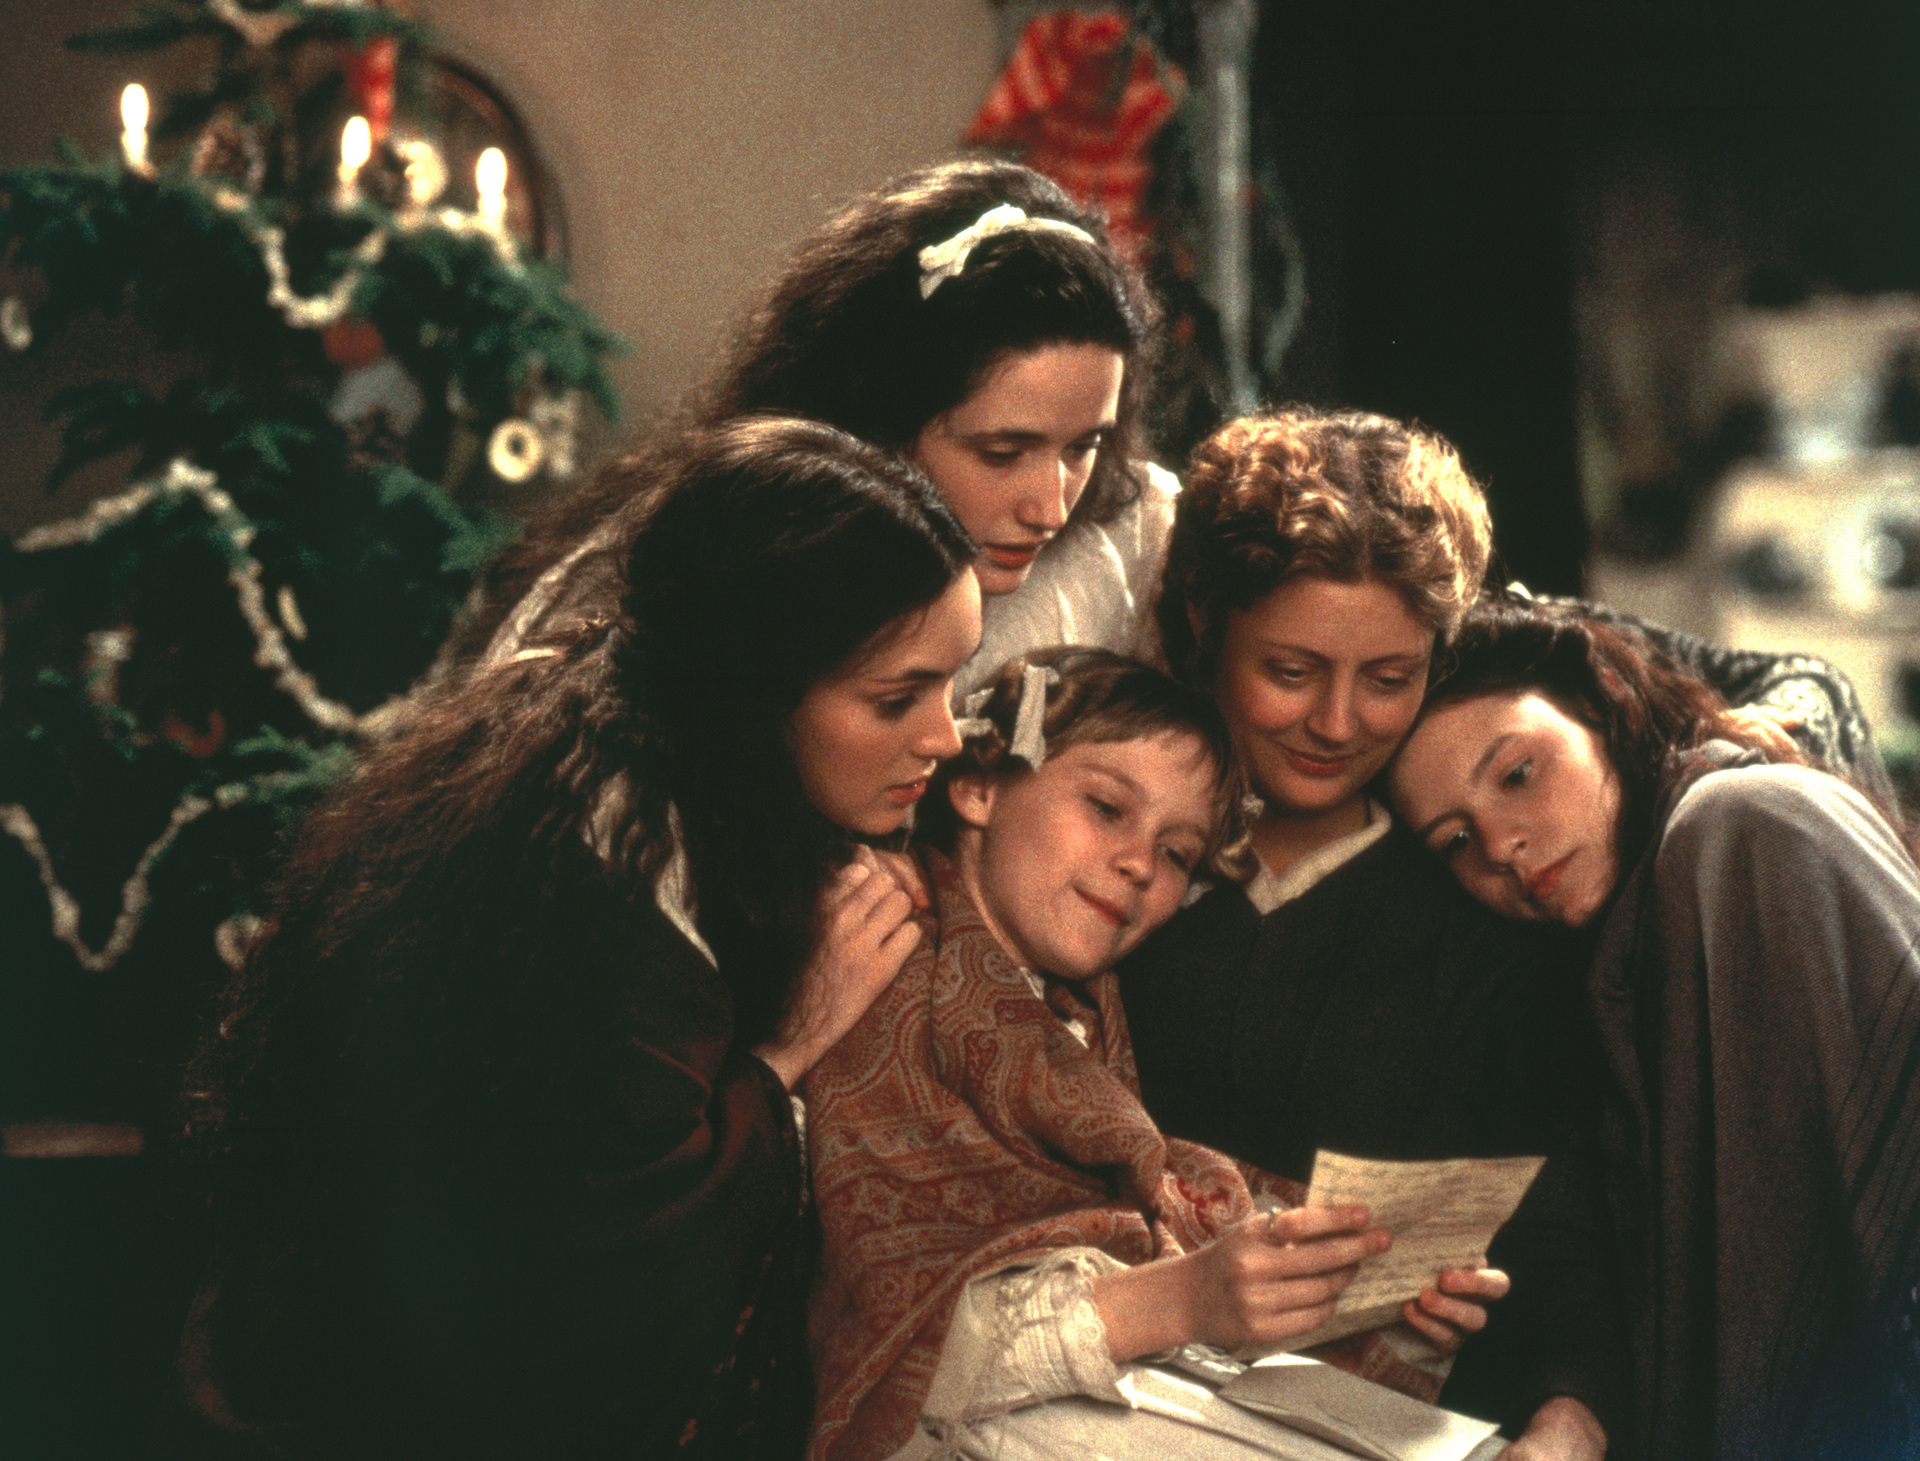 louisa may alcott images little women hd wallpaper and